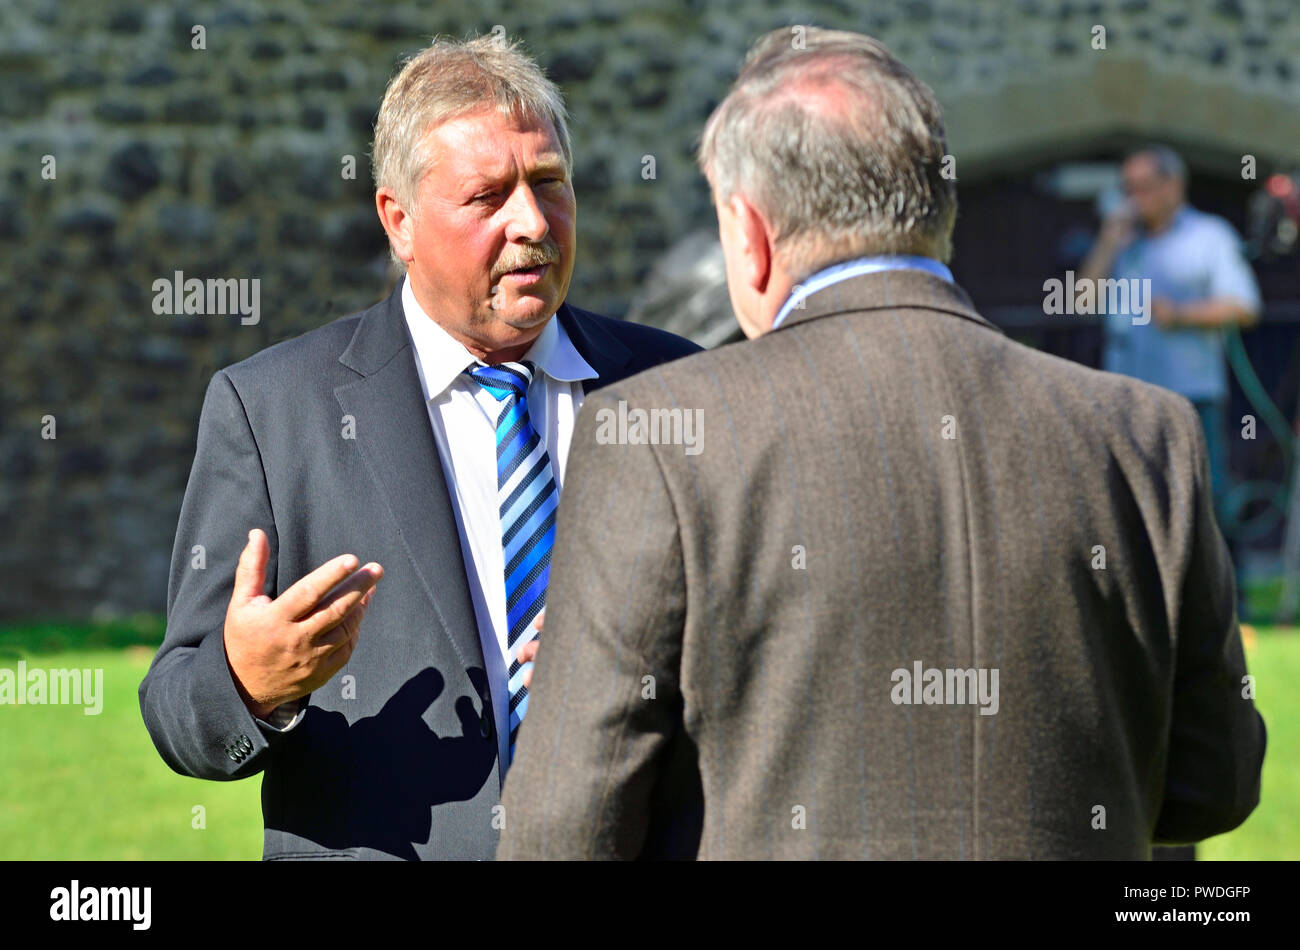 Sammy Wilson MP (DUP: East Antrim) being interviewed by Alex Salmond on College Green, Westminster, October 2018 - Stock Image